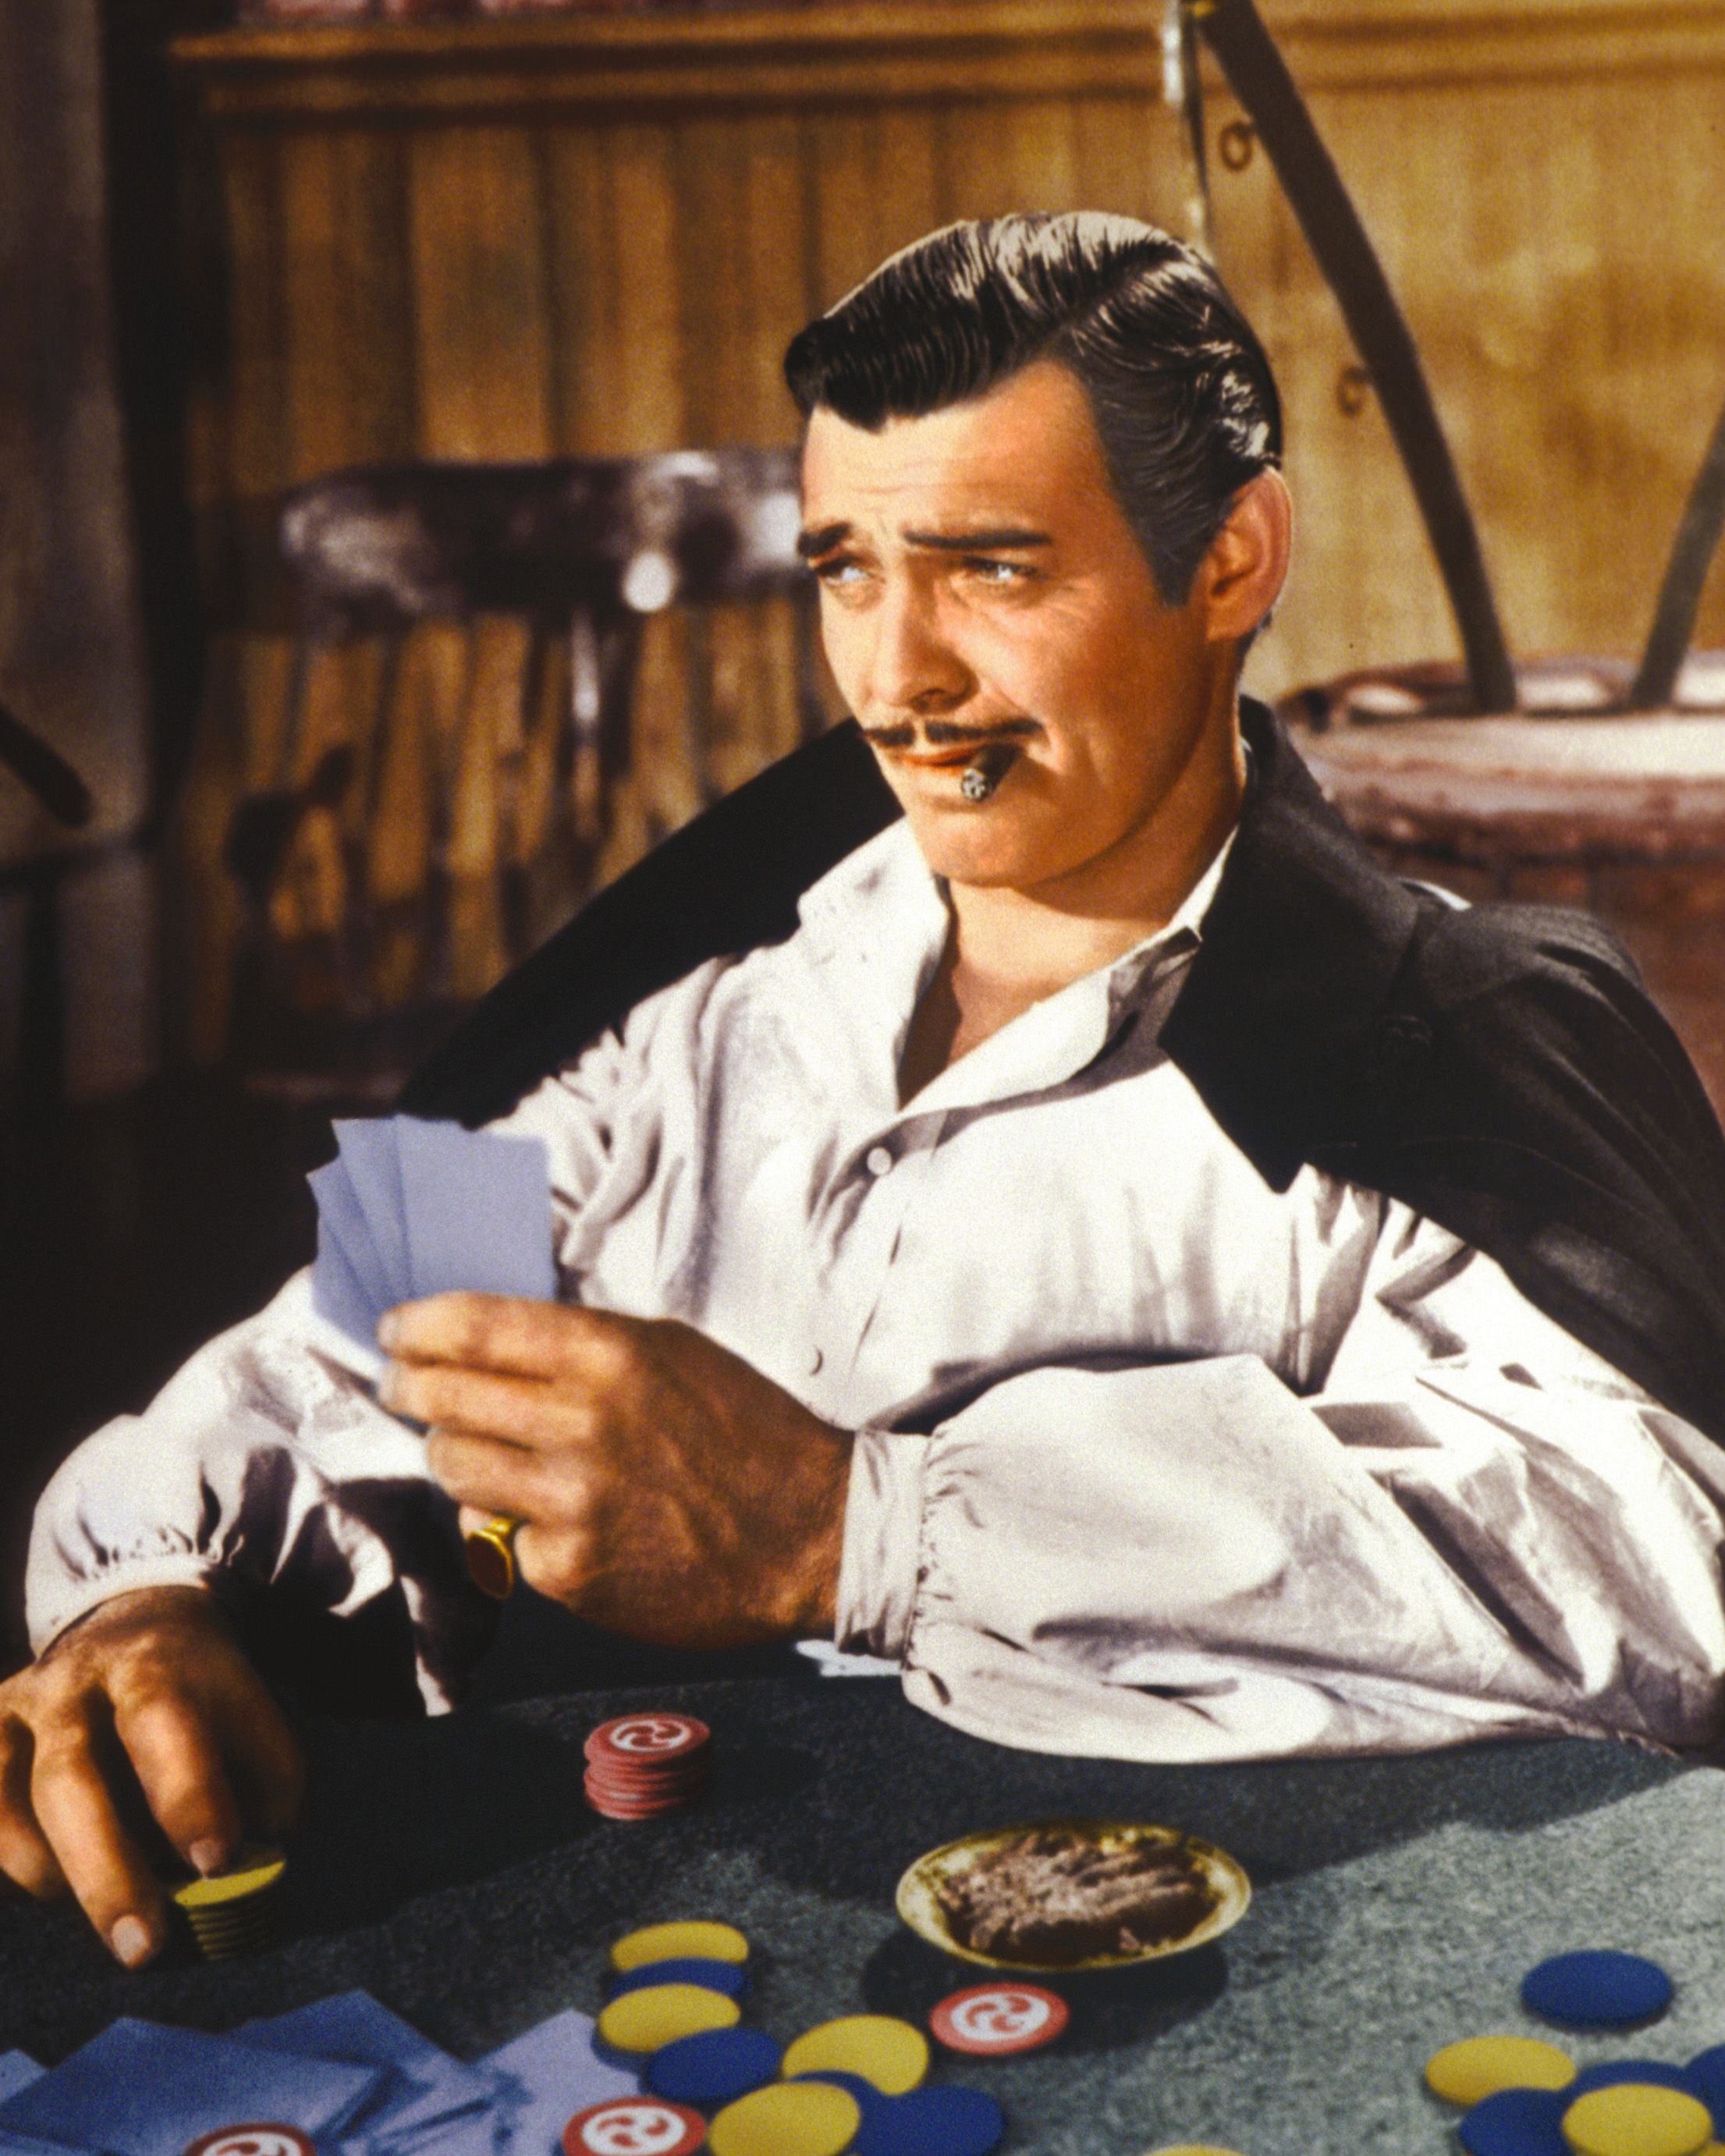 """Clark Gable playing cards and smoking a cigar in a publicity still issued for the film """"Gone With The Wind,"""" 1939. 